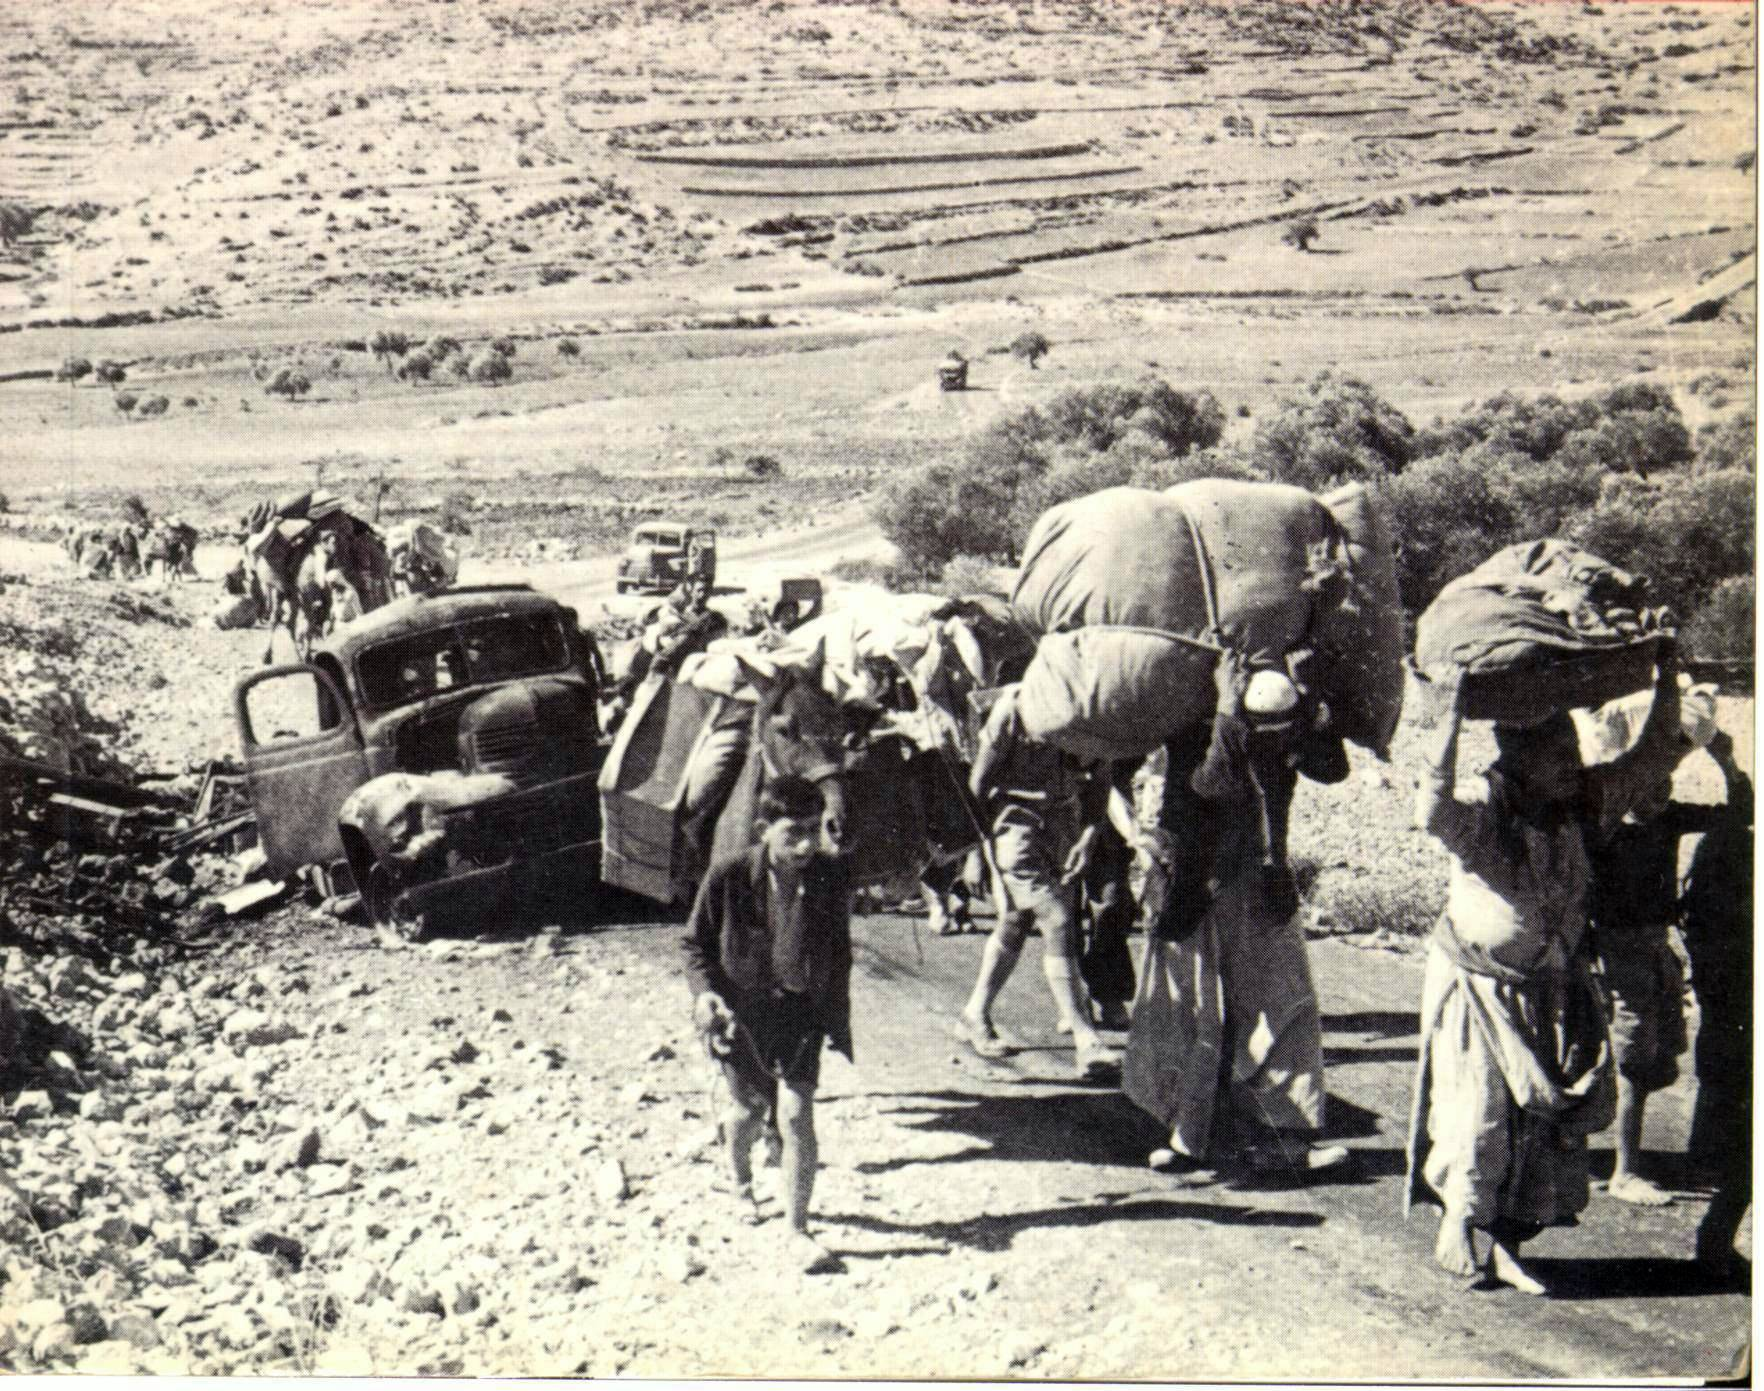 Photo of Massacres were indispensable to creation of the Israeli state